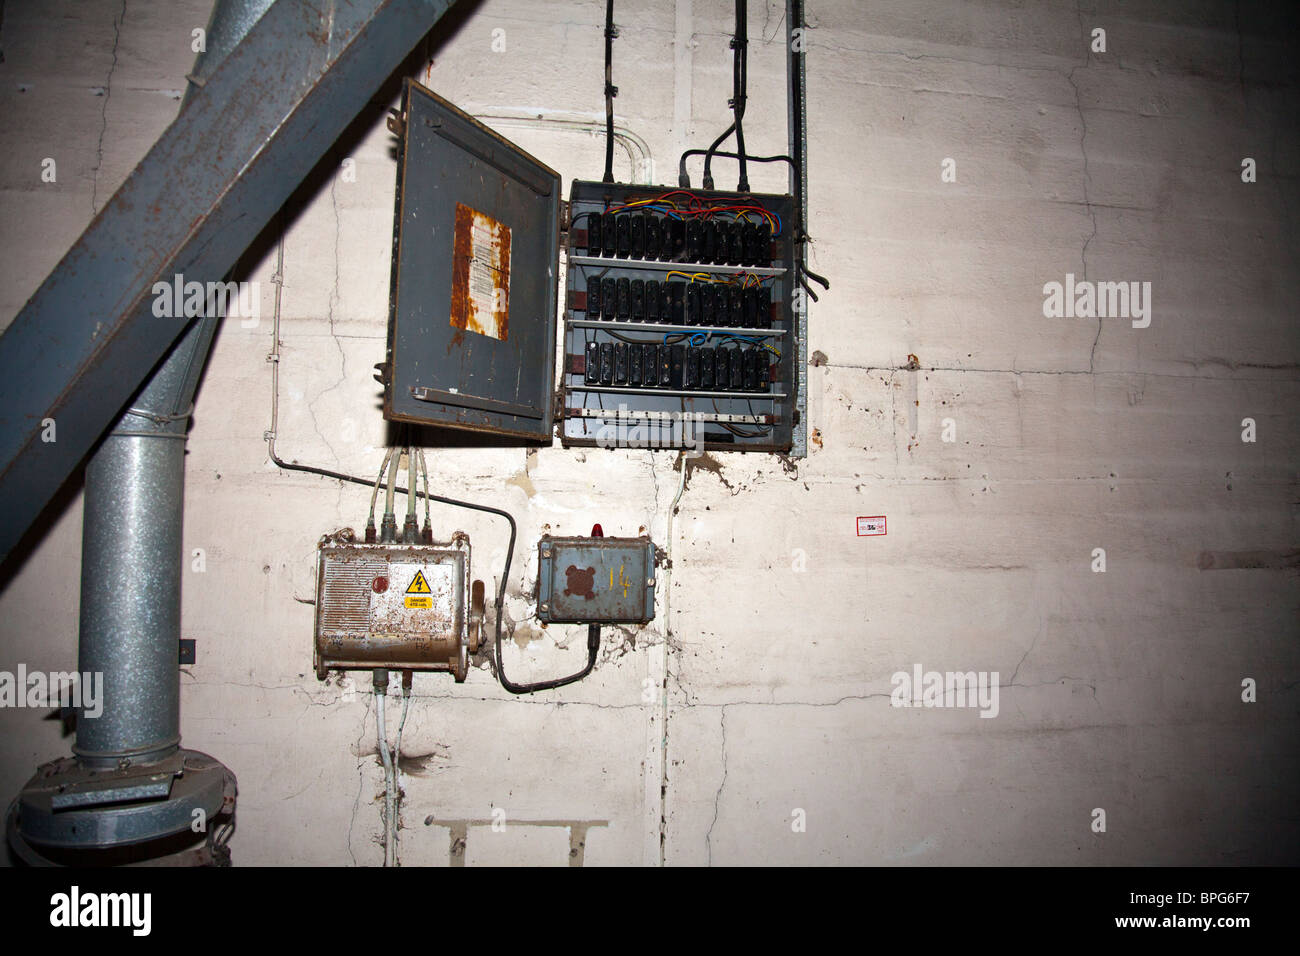 Old Electrical Panel Stock Photos Zinsco Fuse Box Control In A Derelict Factory Wires And Switches Everywhere Image